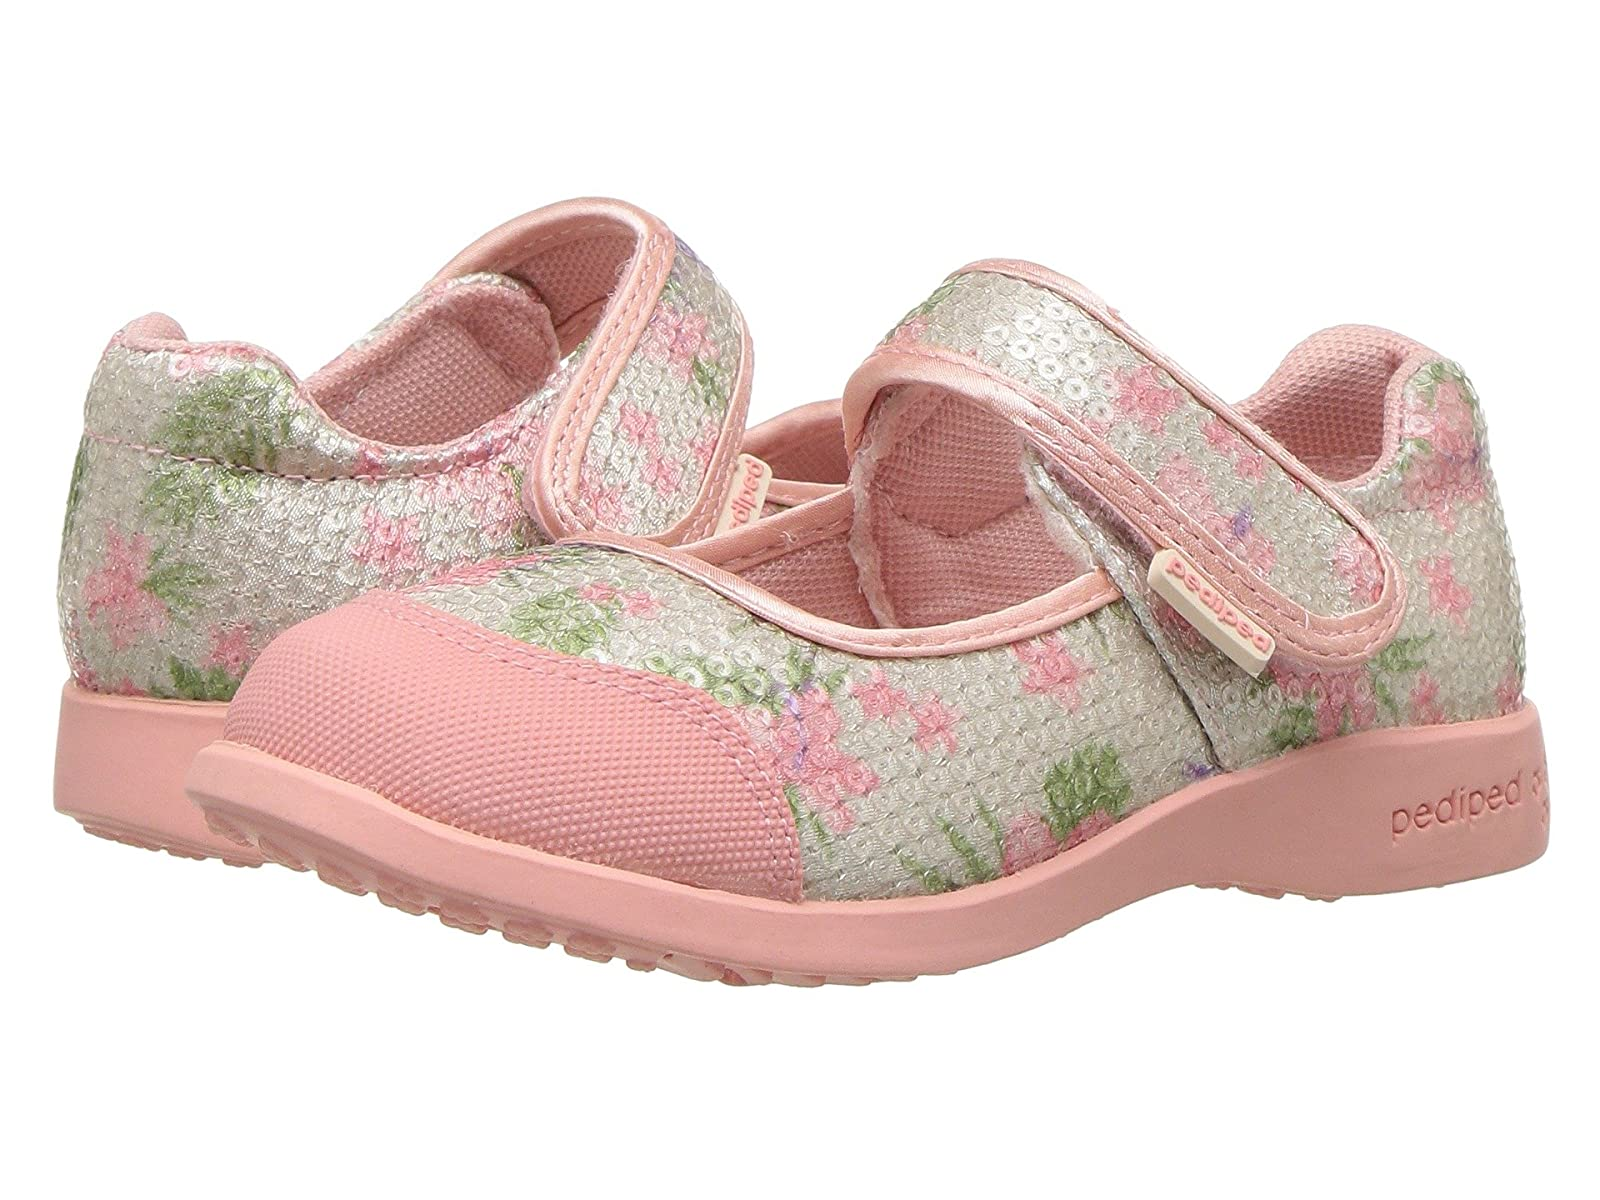 pediped Bree Flex (Toddler/Little Kid)Atmospheric grades have affordable shoes